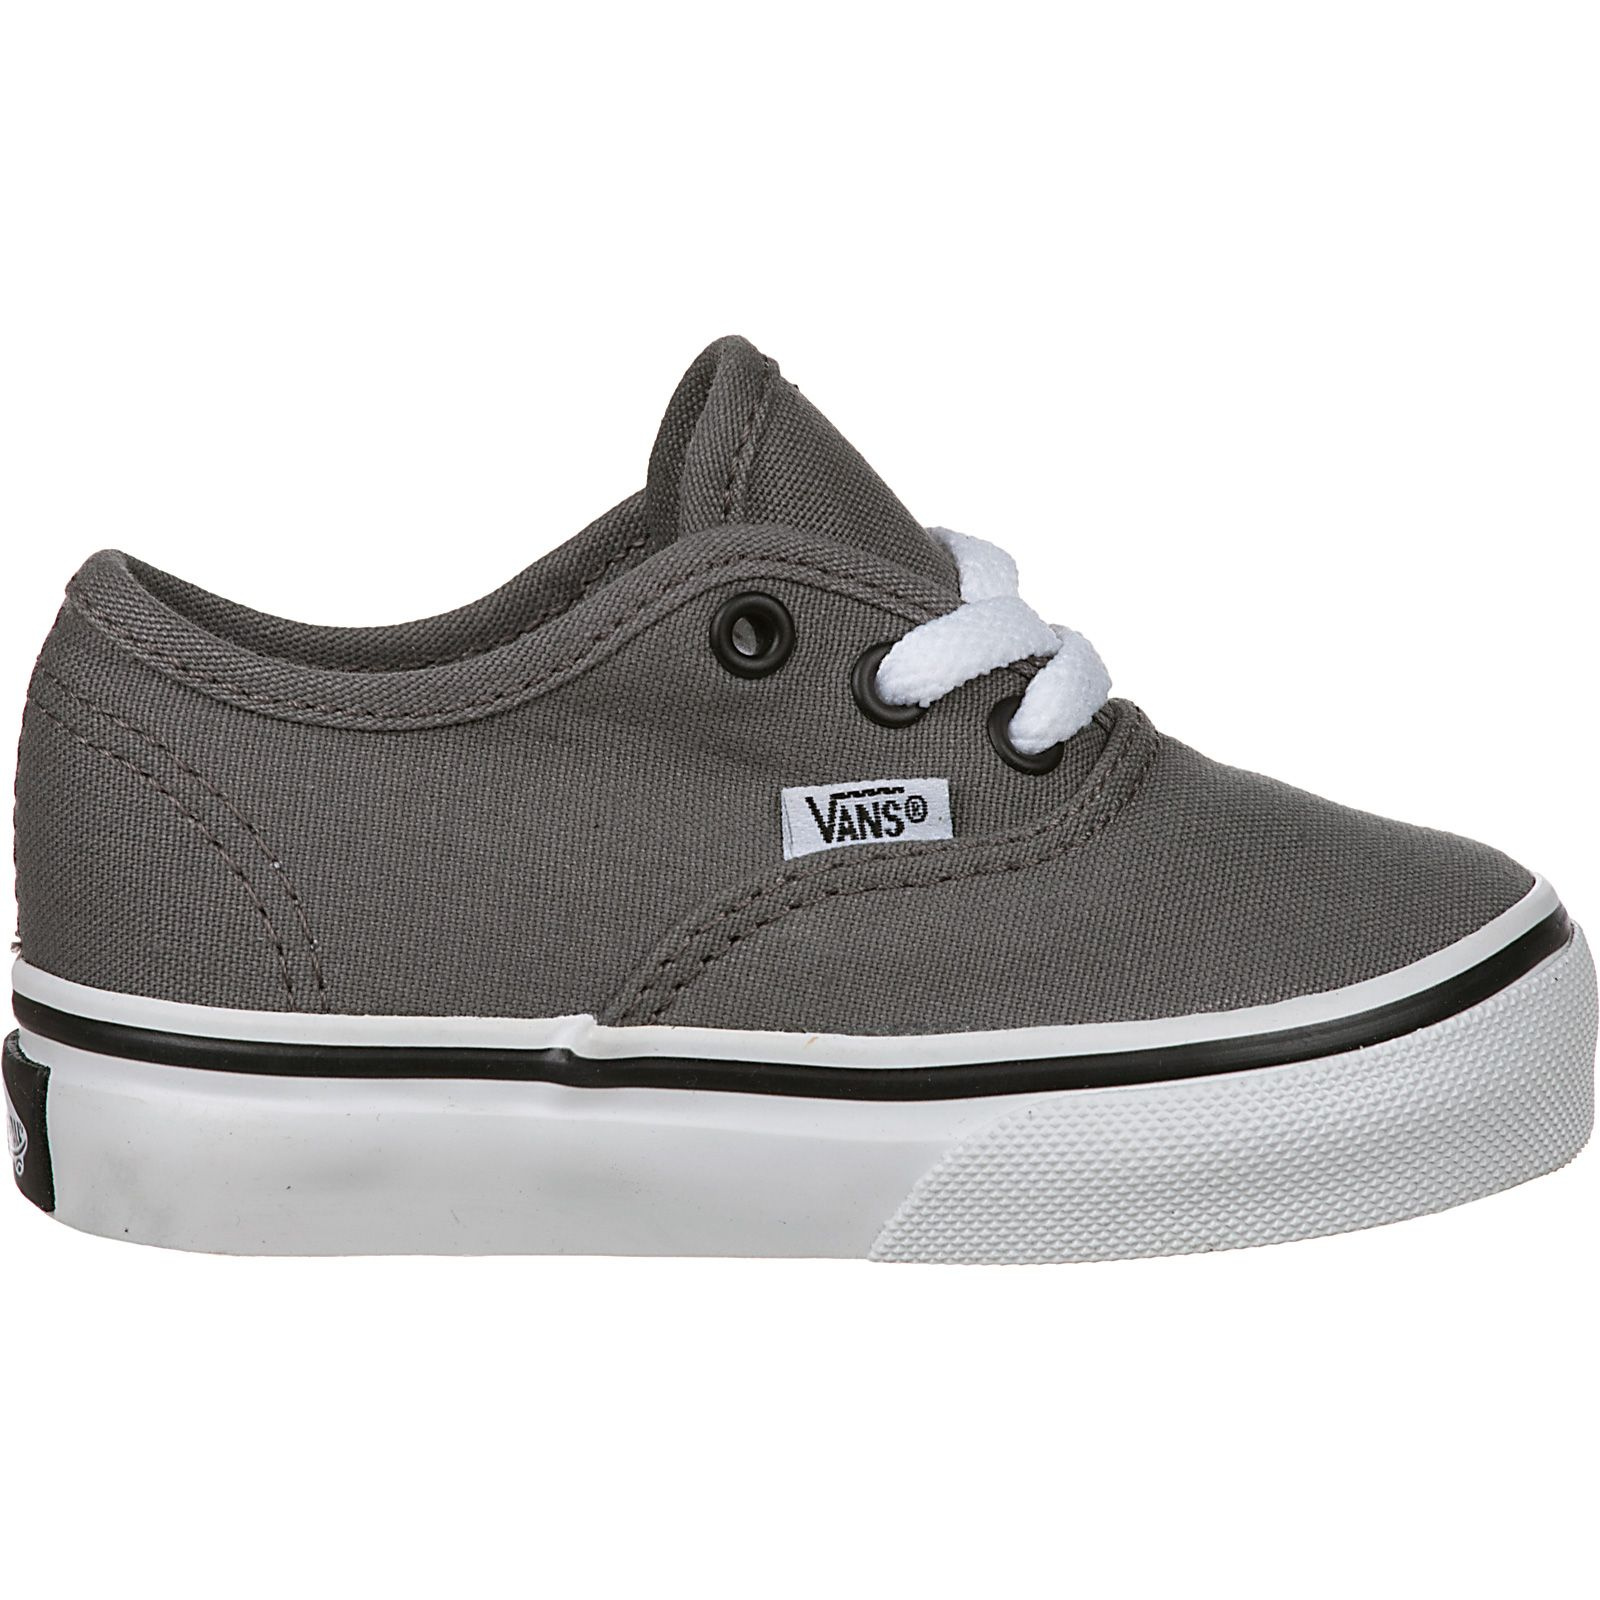 1116ae73682 Pewter Canvas Baby Vans. Thanks  Bonnie Fromm and Uncle Joel for the awesome  shoes!